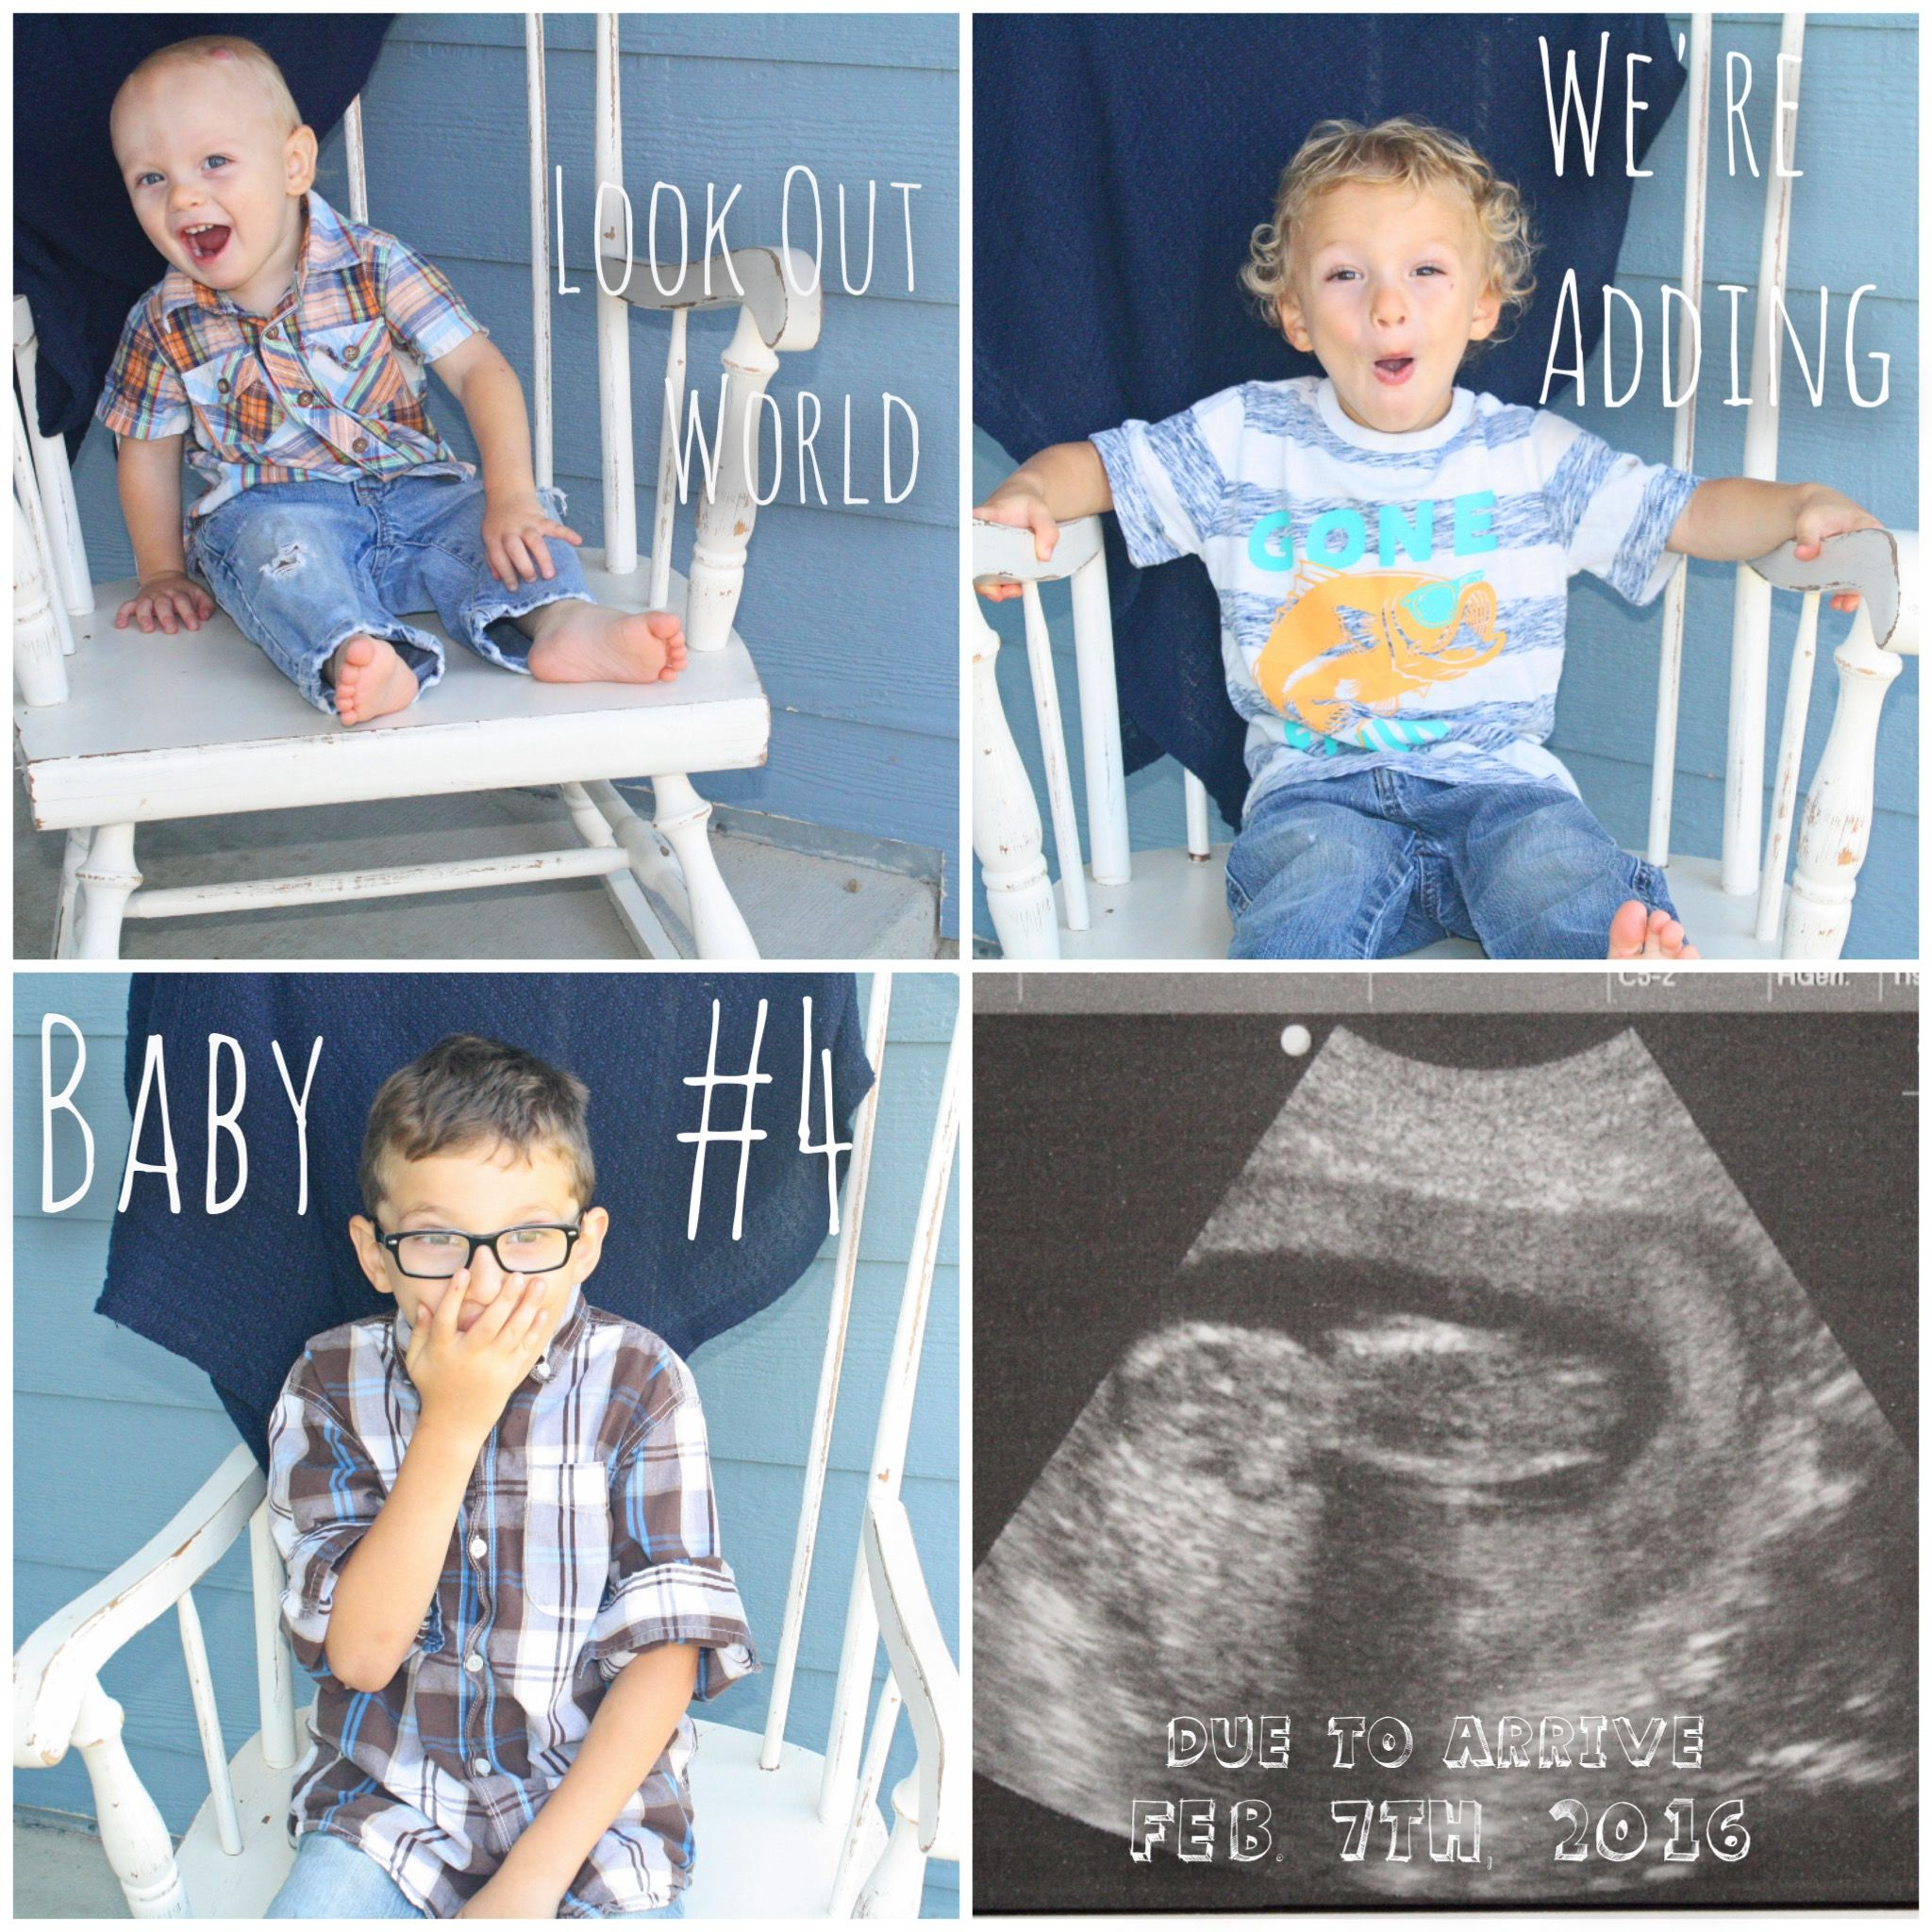 Fourth pregnancy announcement    For years down the road    My